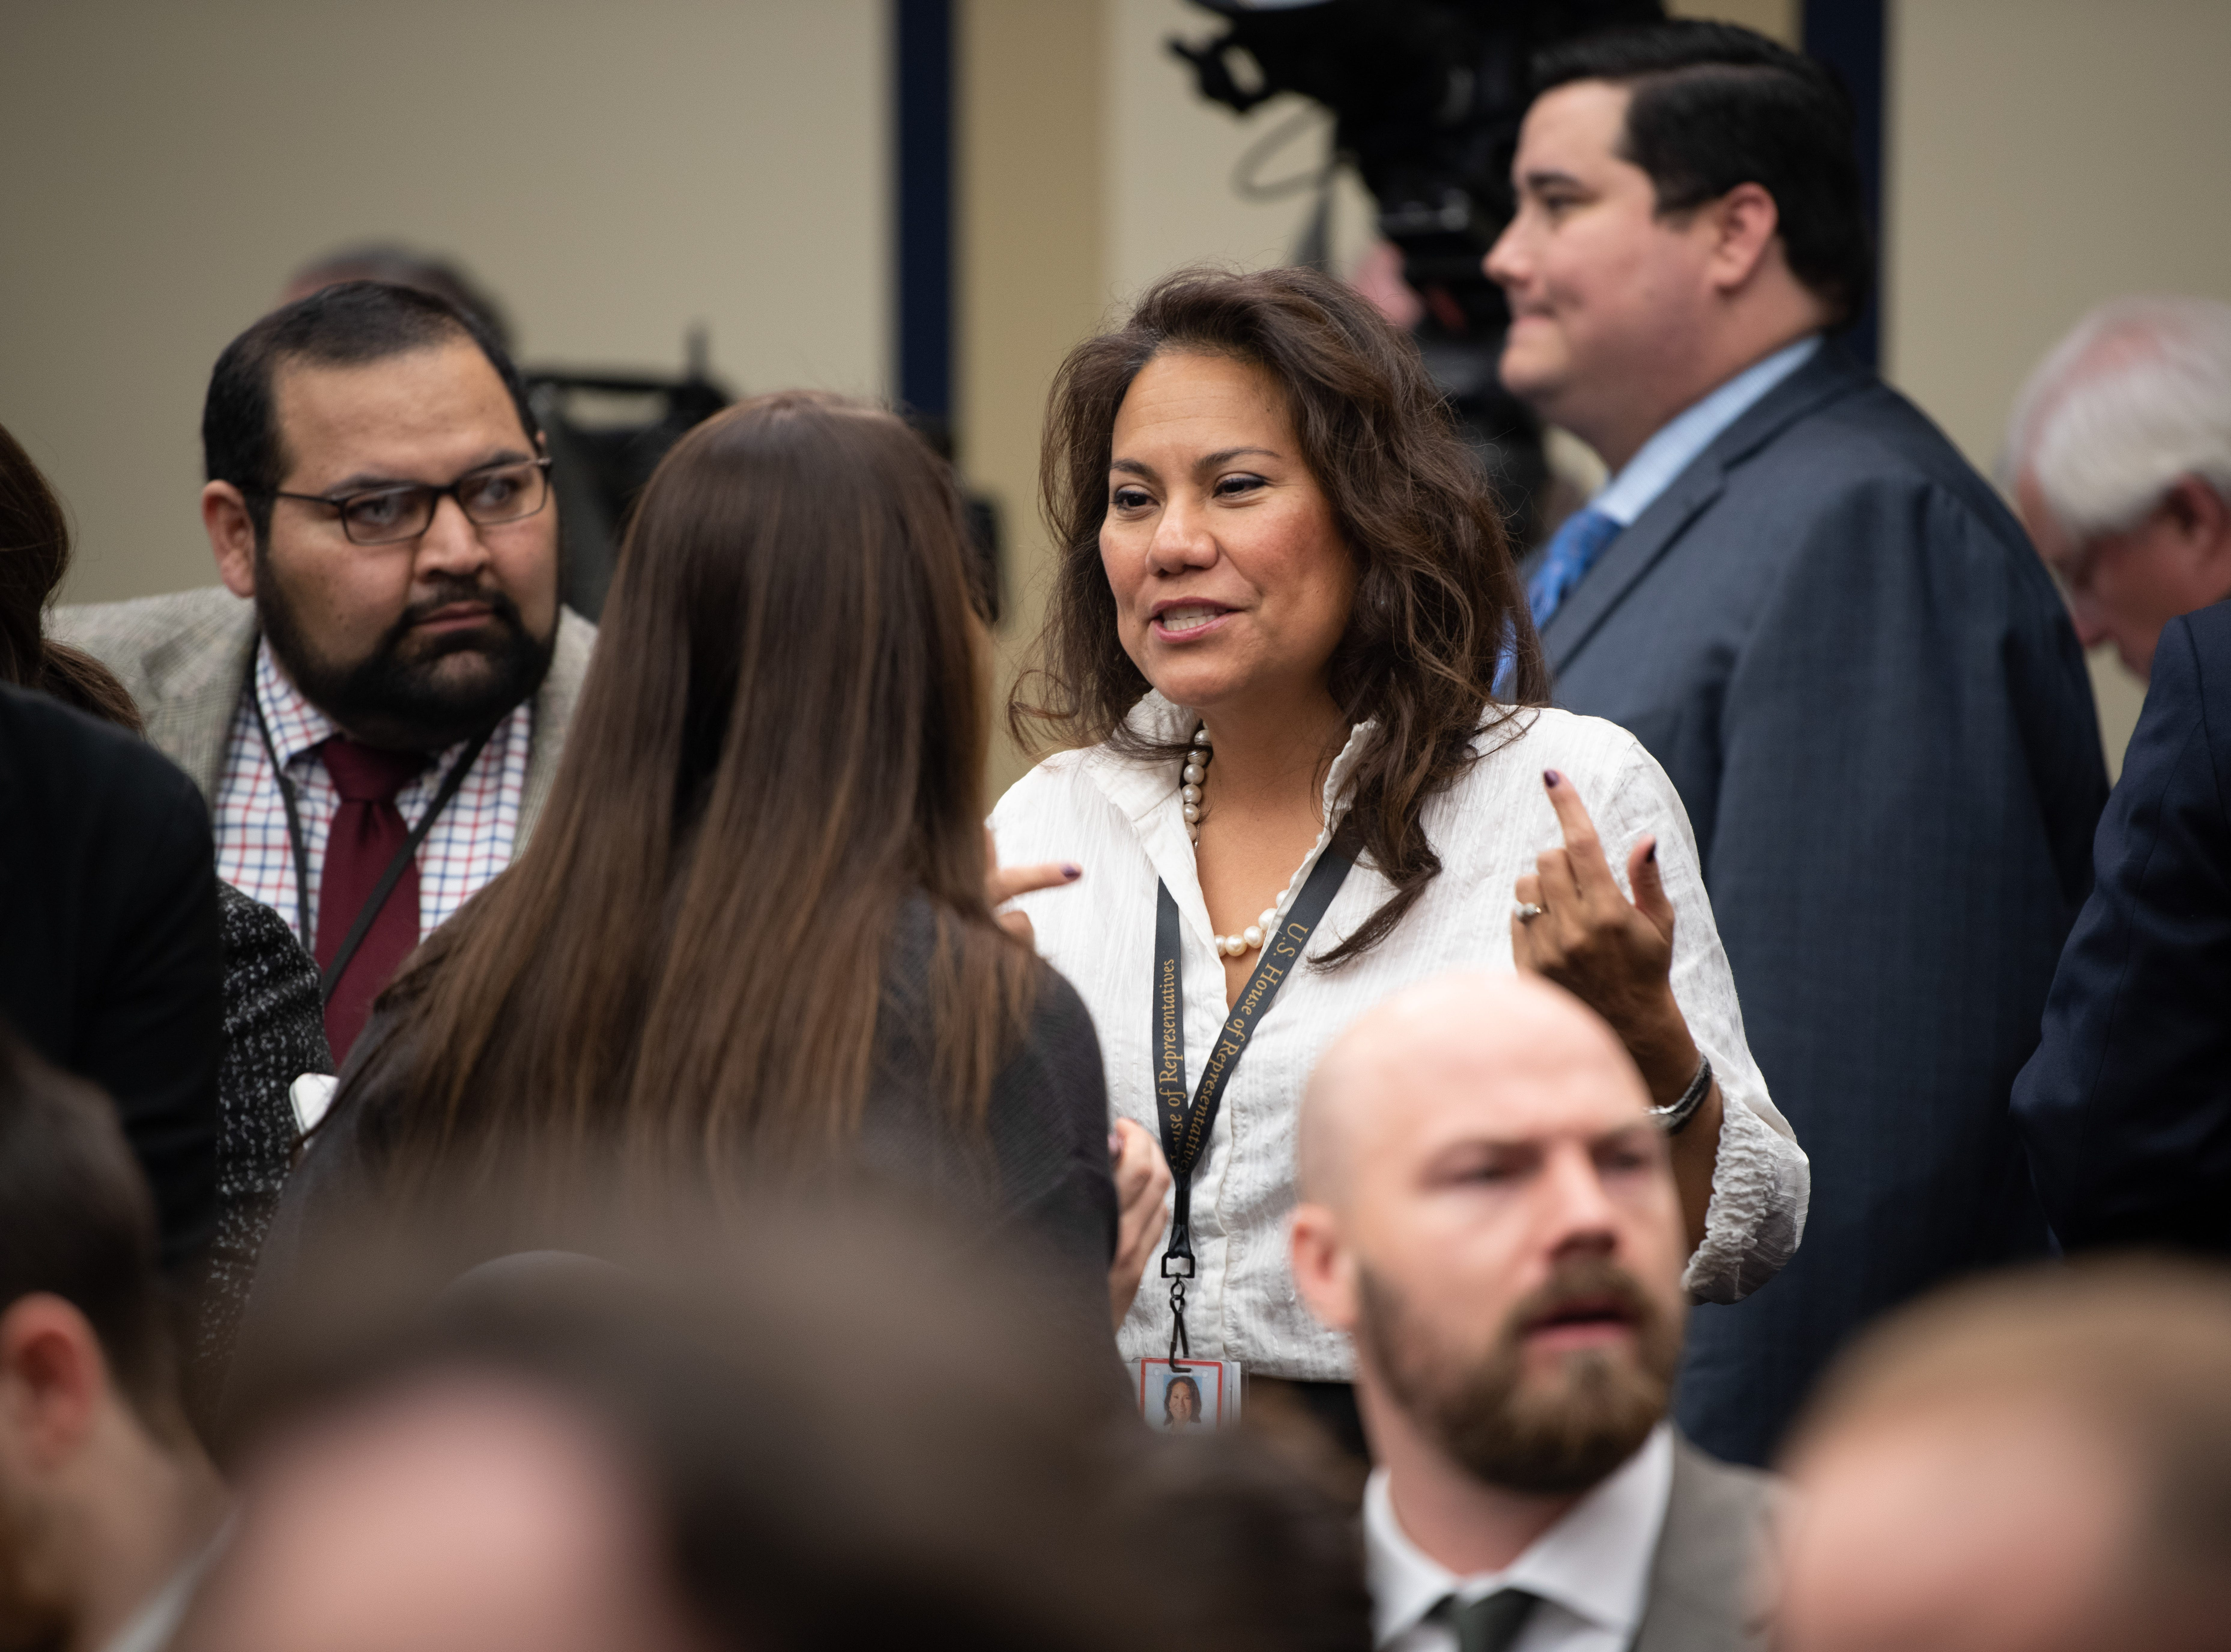 {Nov. 30, 2018} {10:30 a.m.} -- Washington, DC  -- Rep. Elect Veronica Escobar of Texas (D) chats with Alexandria Ocasio-Cortez (D, N.Y.) while awaiting the start of the congressional office lottery.-- Photo by Hannah Gaber, USA TODAY Staff